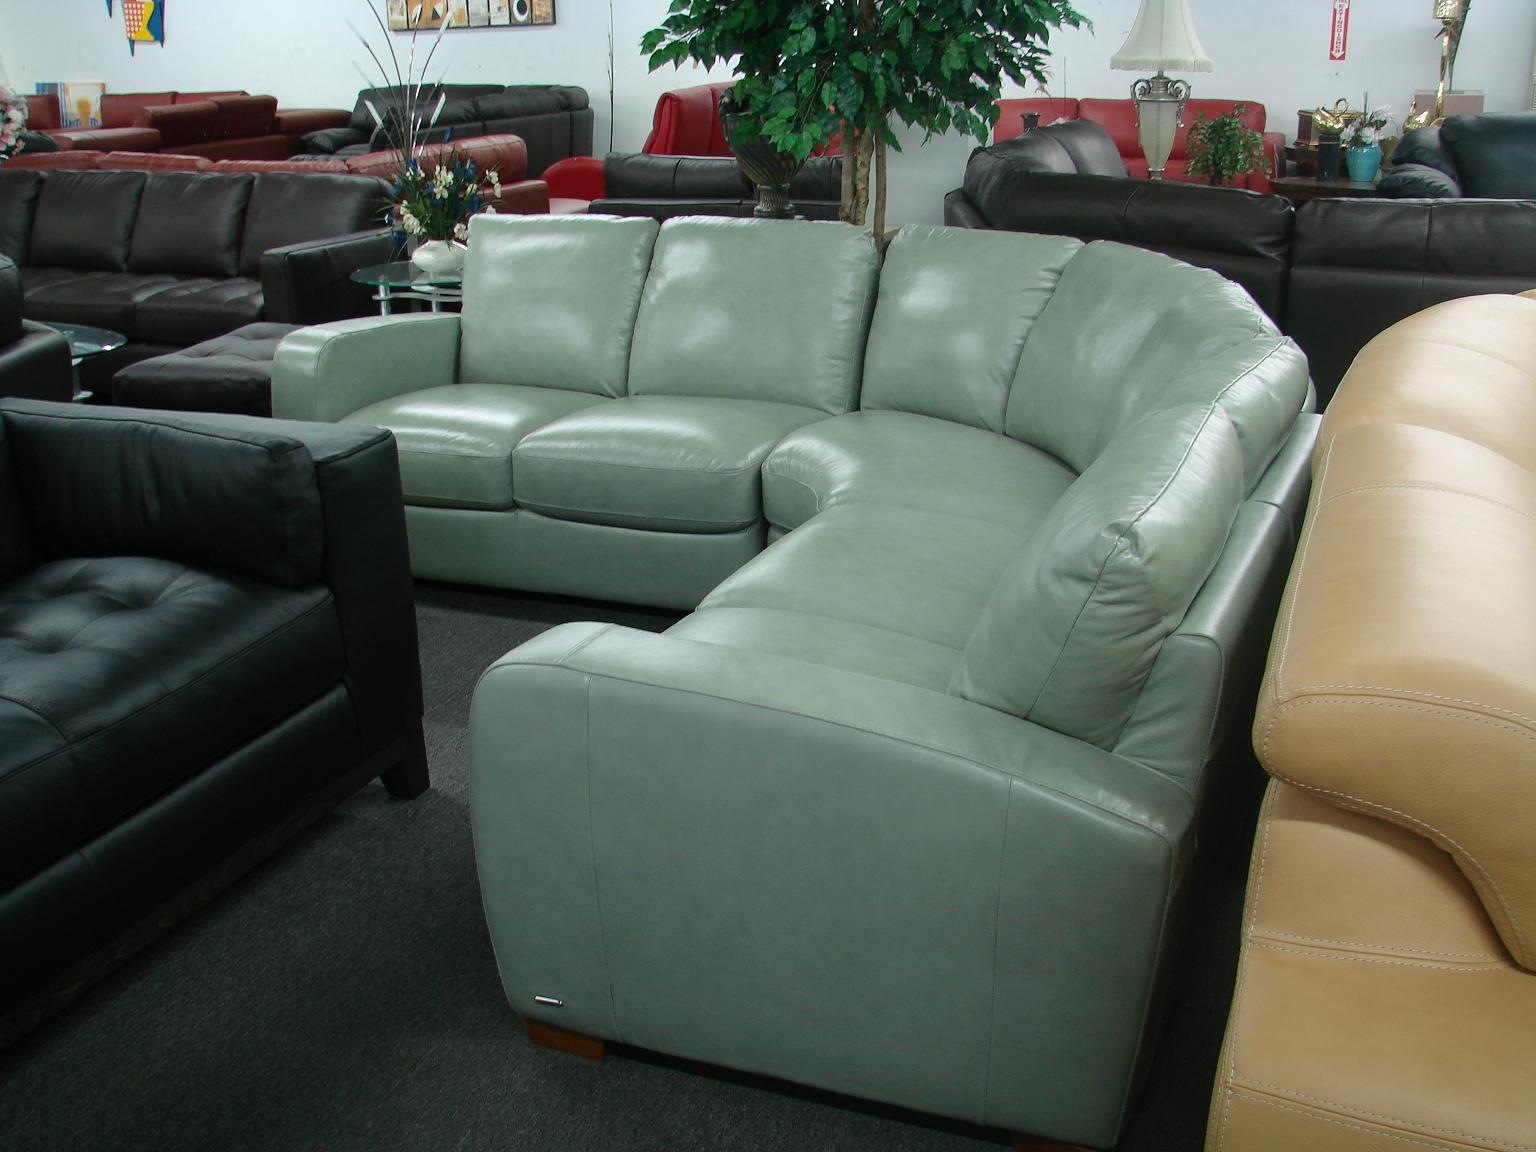 Green Leather Sectional Sofa With Inspiration Design 29132 in Green Leather Sectional Sofas